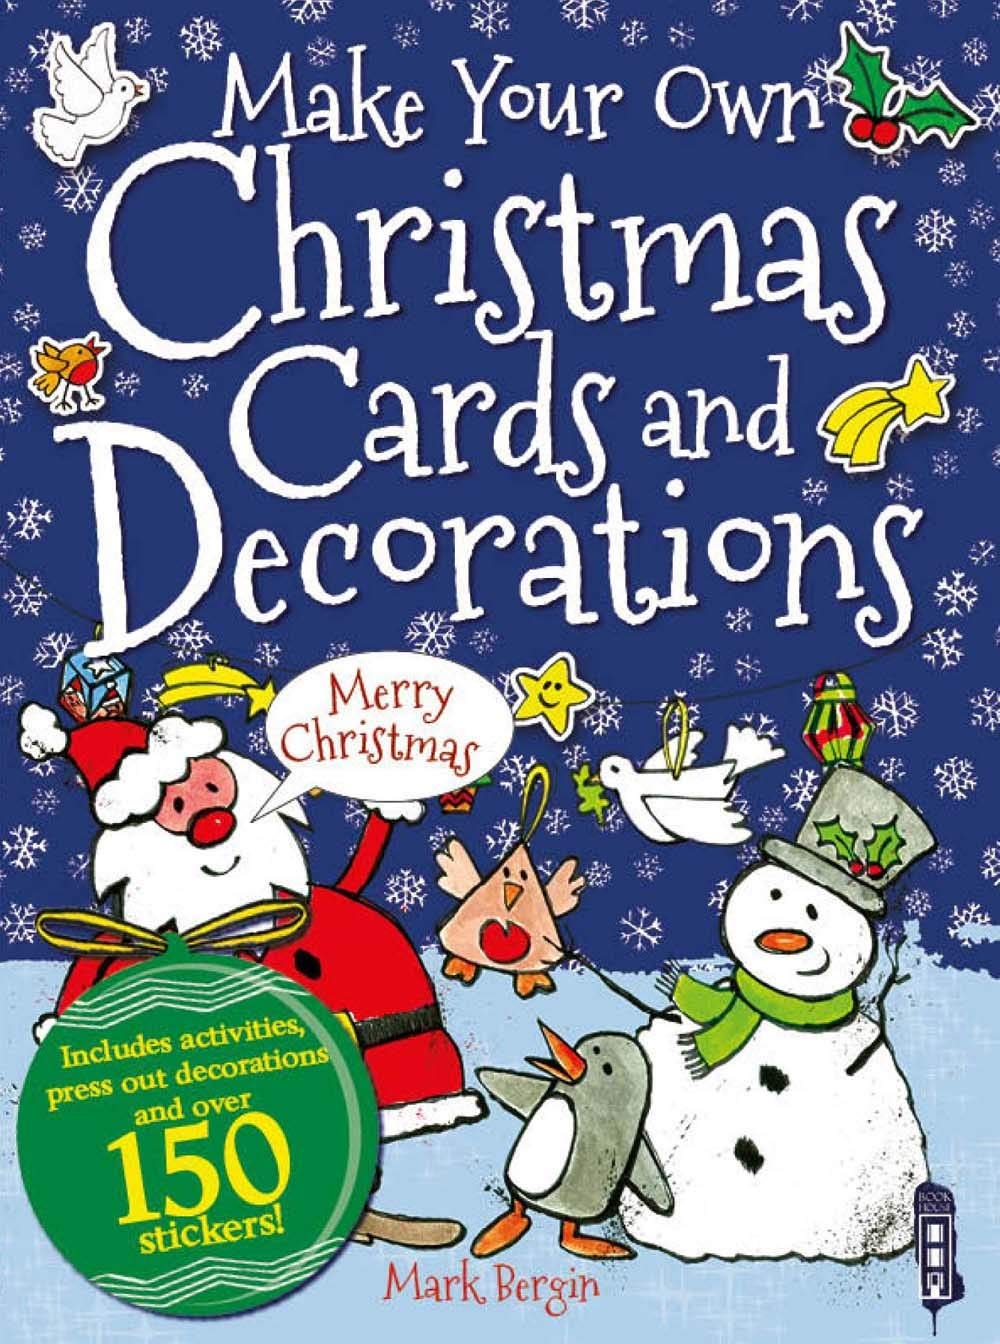 Make Your Own Christmas Cards and Decorations: Amazon.co.uk: Mark